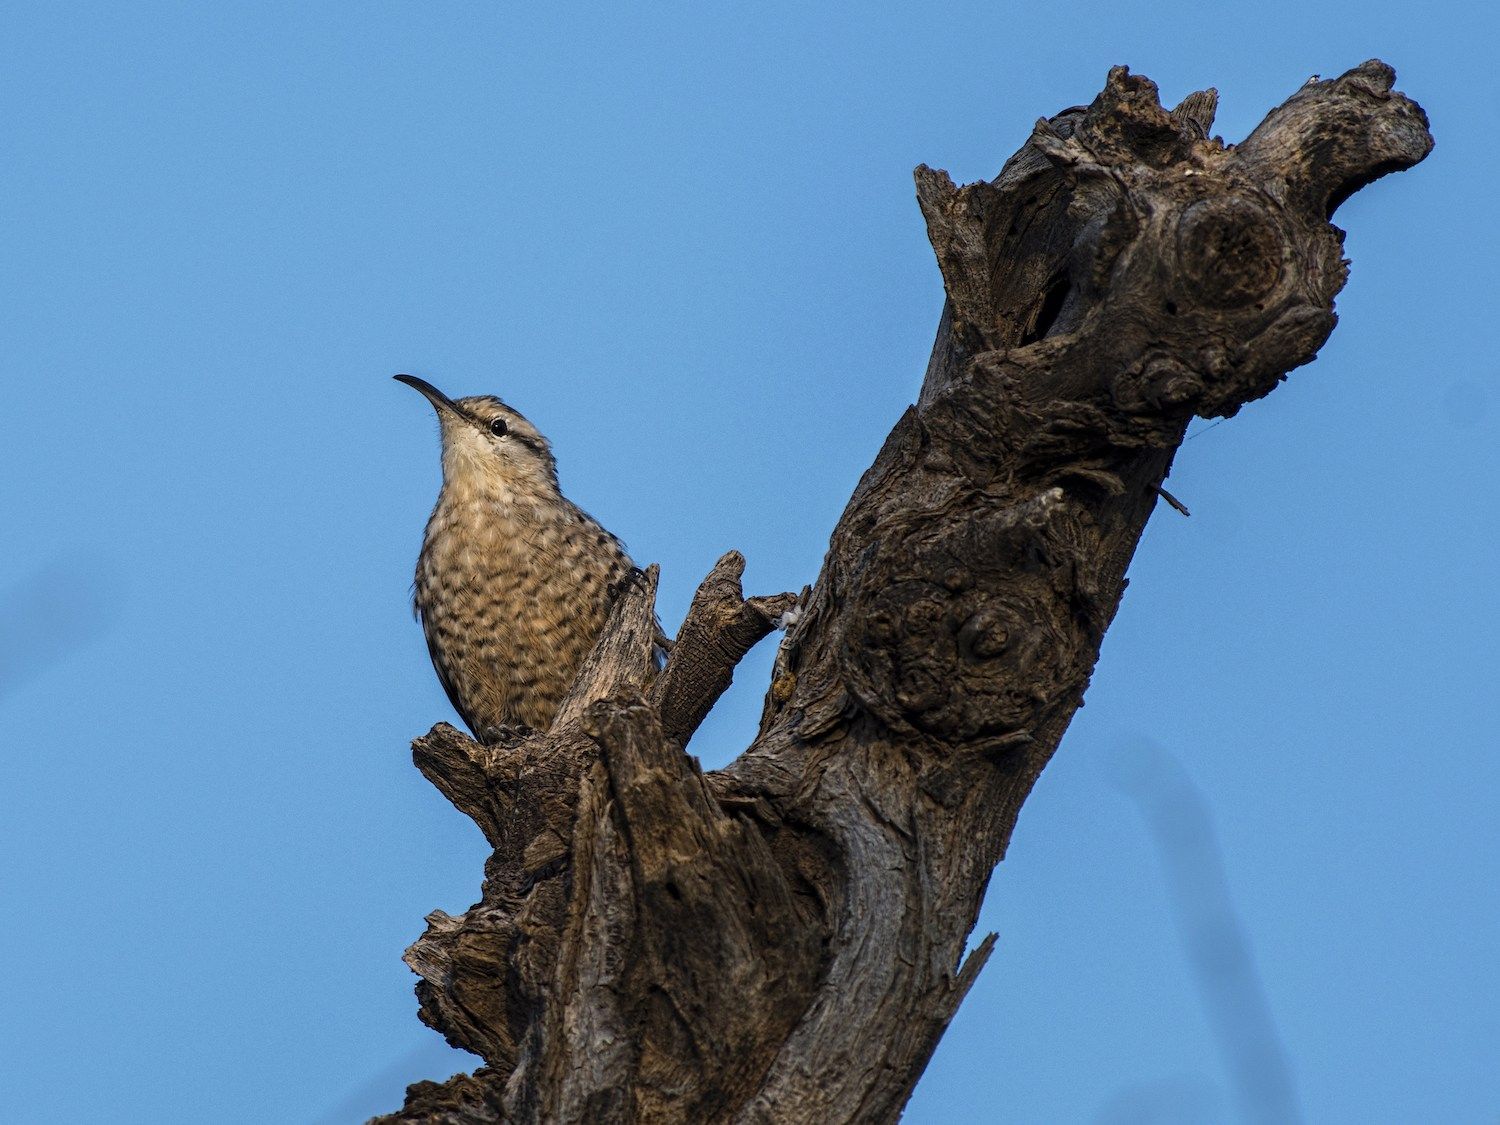 The Indian spotted creeper usually begins foraging from the base of a tree, climbing upwards, before flying to the next tree. Photo: Arpan Saha  Endemic to India, the spotted creeper is found in dry regions of the country.  Cover Photo: Arpan Saha